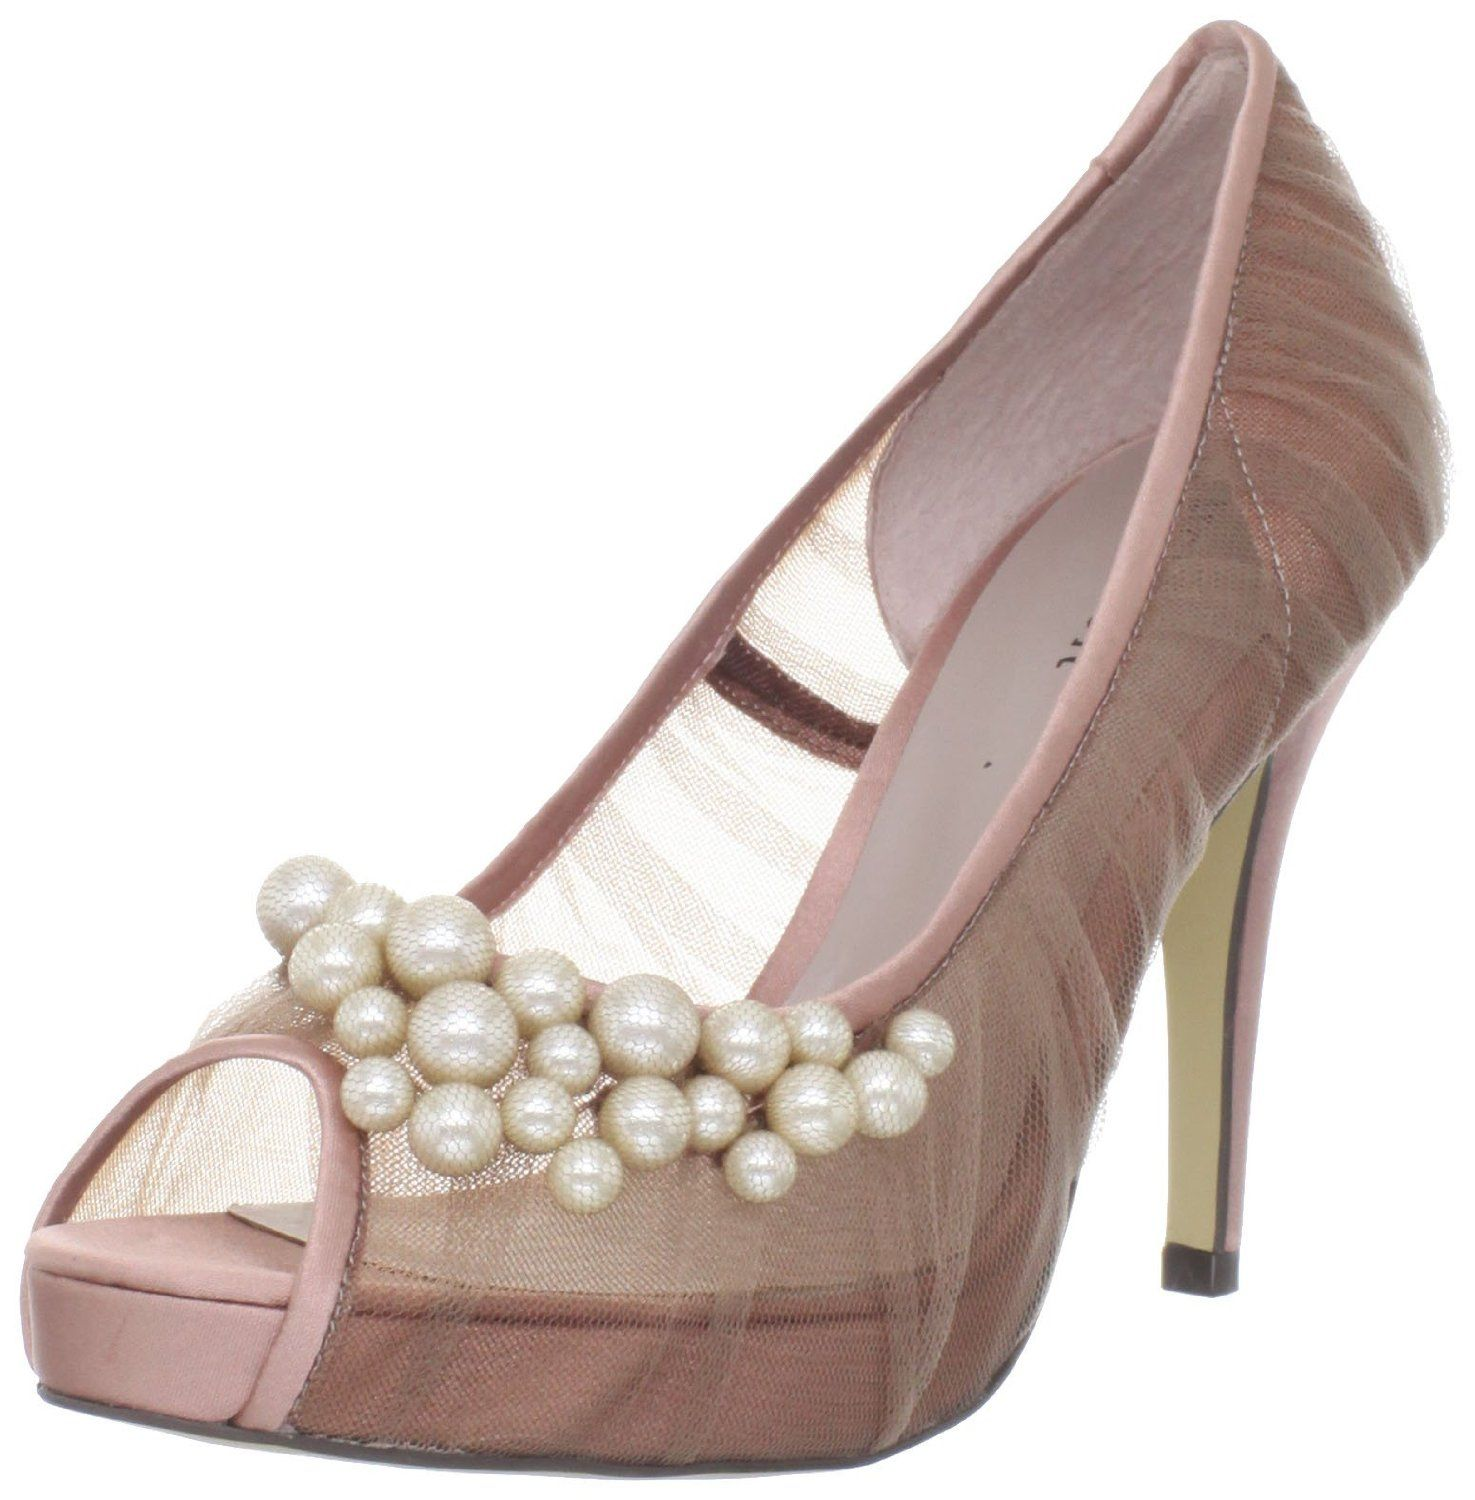 Menbur Women's Crassula Platform Pump - designer shoes ...